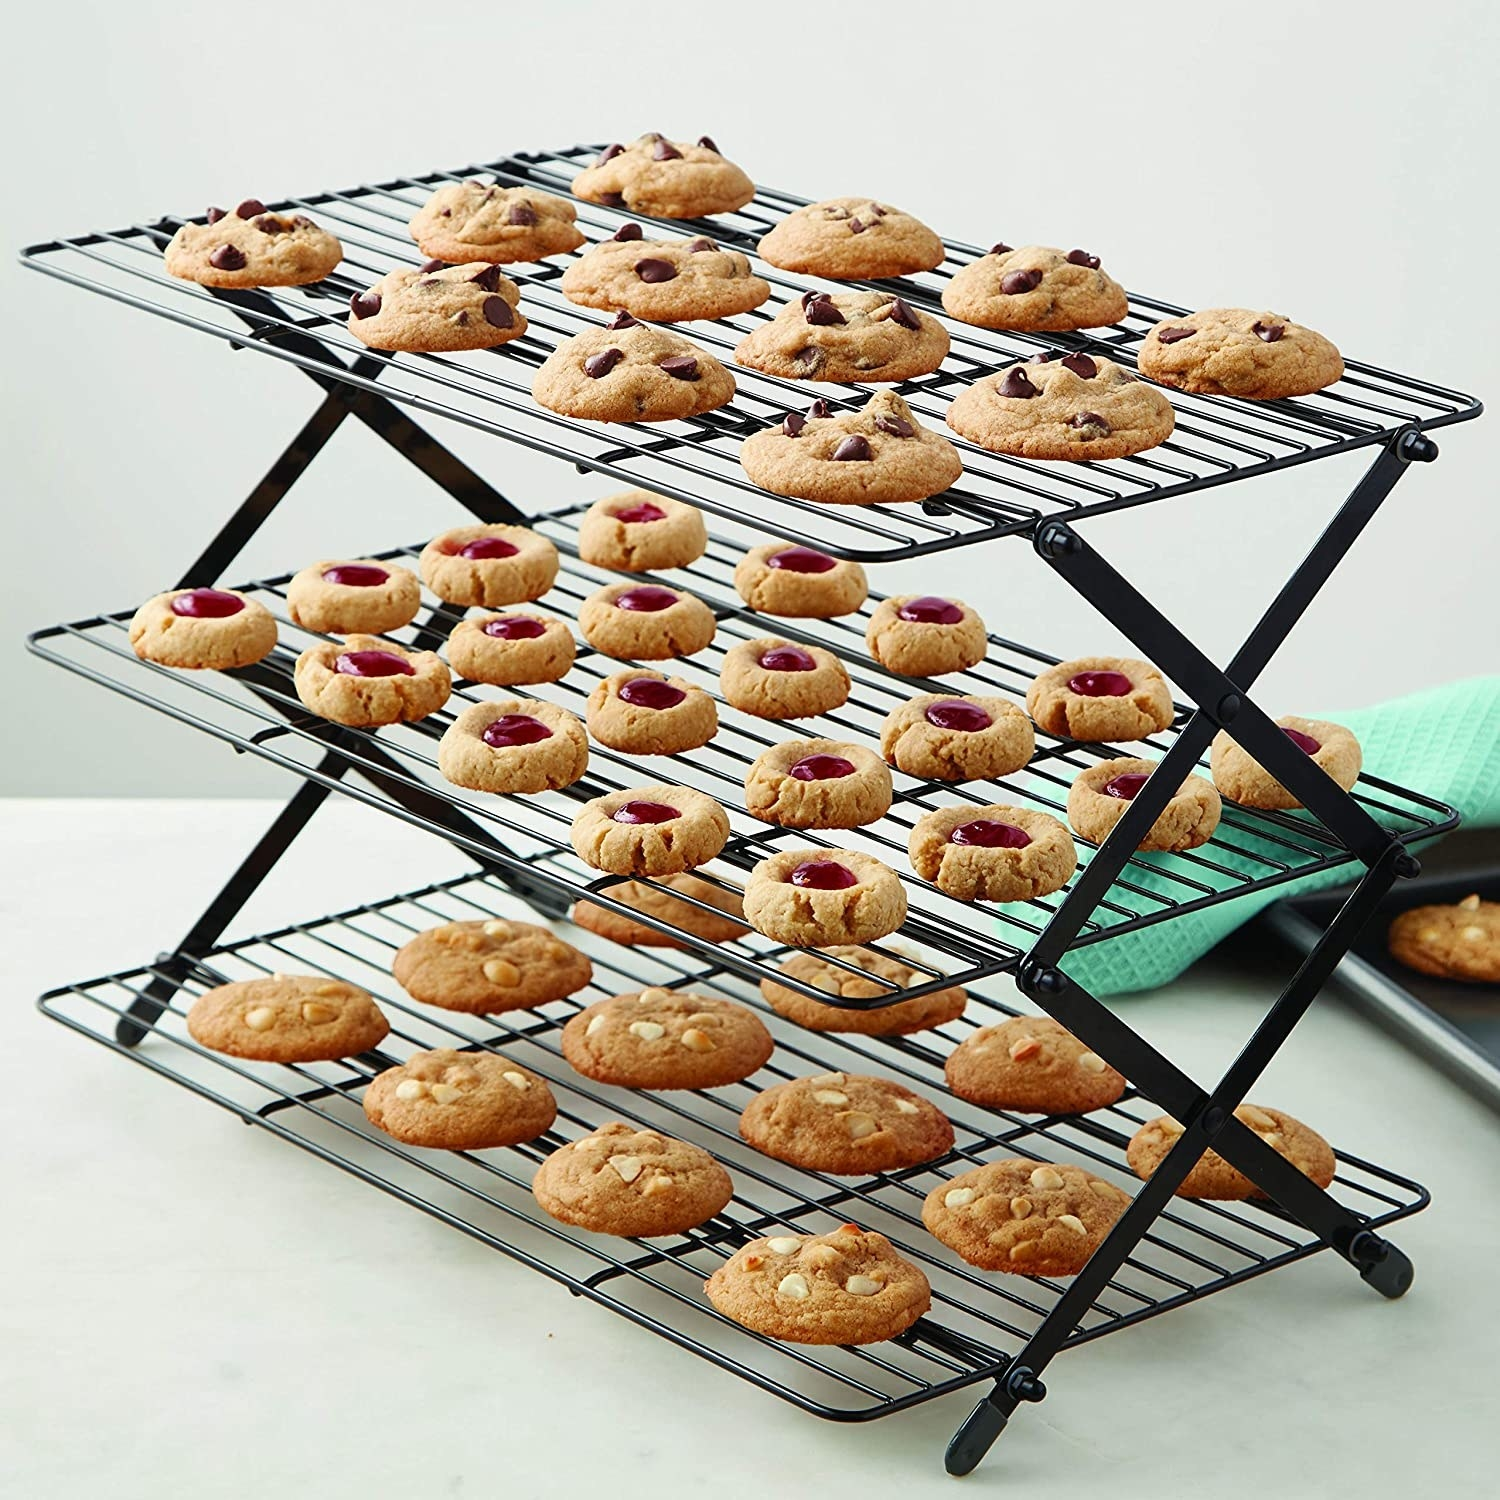 A three tier cookie rack stands on a counter top full of different cookies